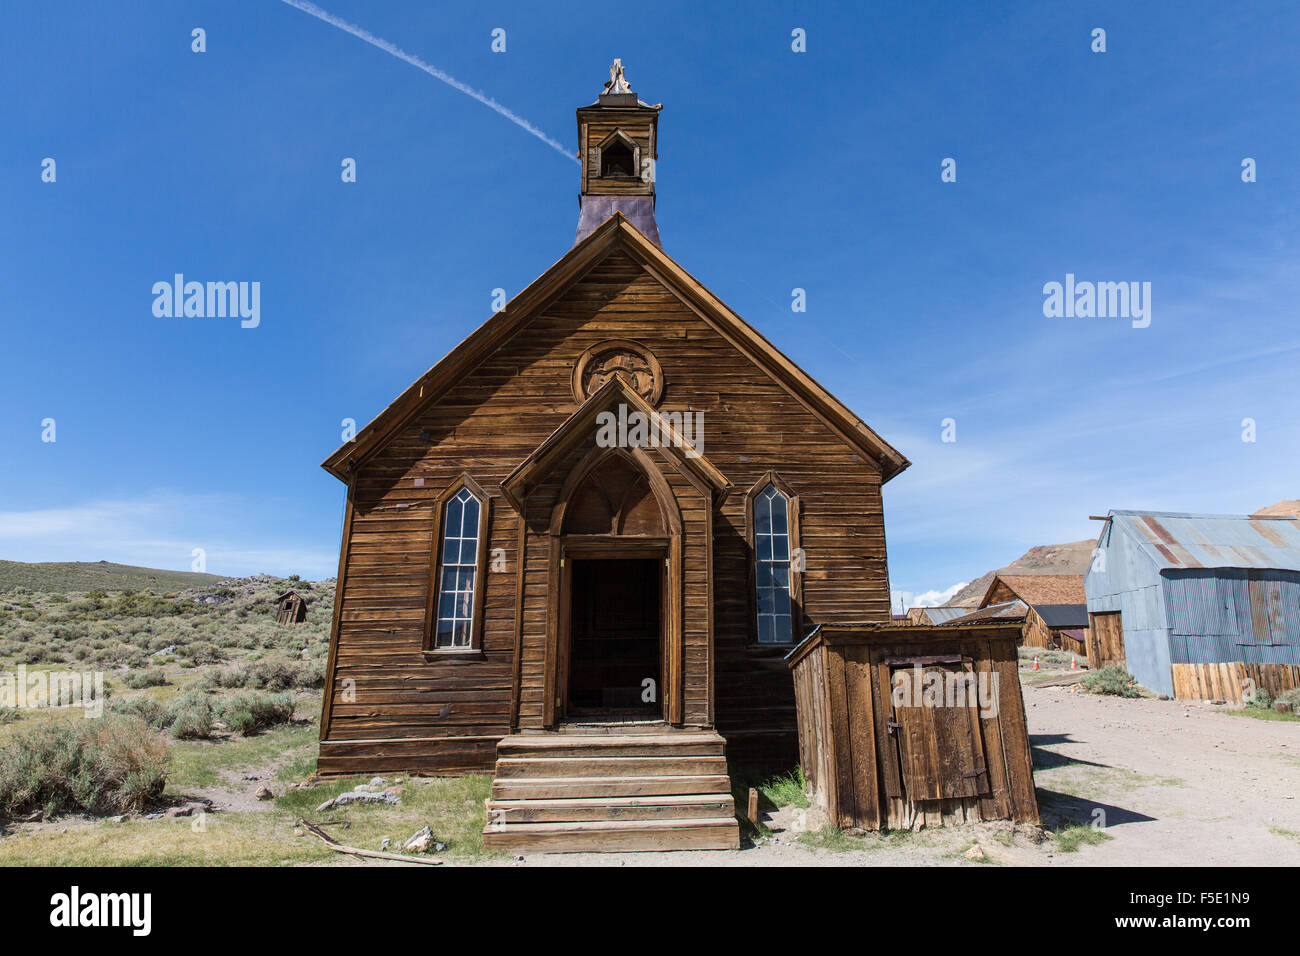 Church in Bodie, ghosttown in California - Stock Image